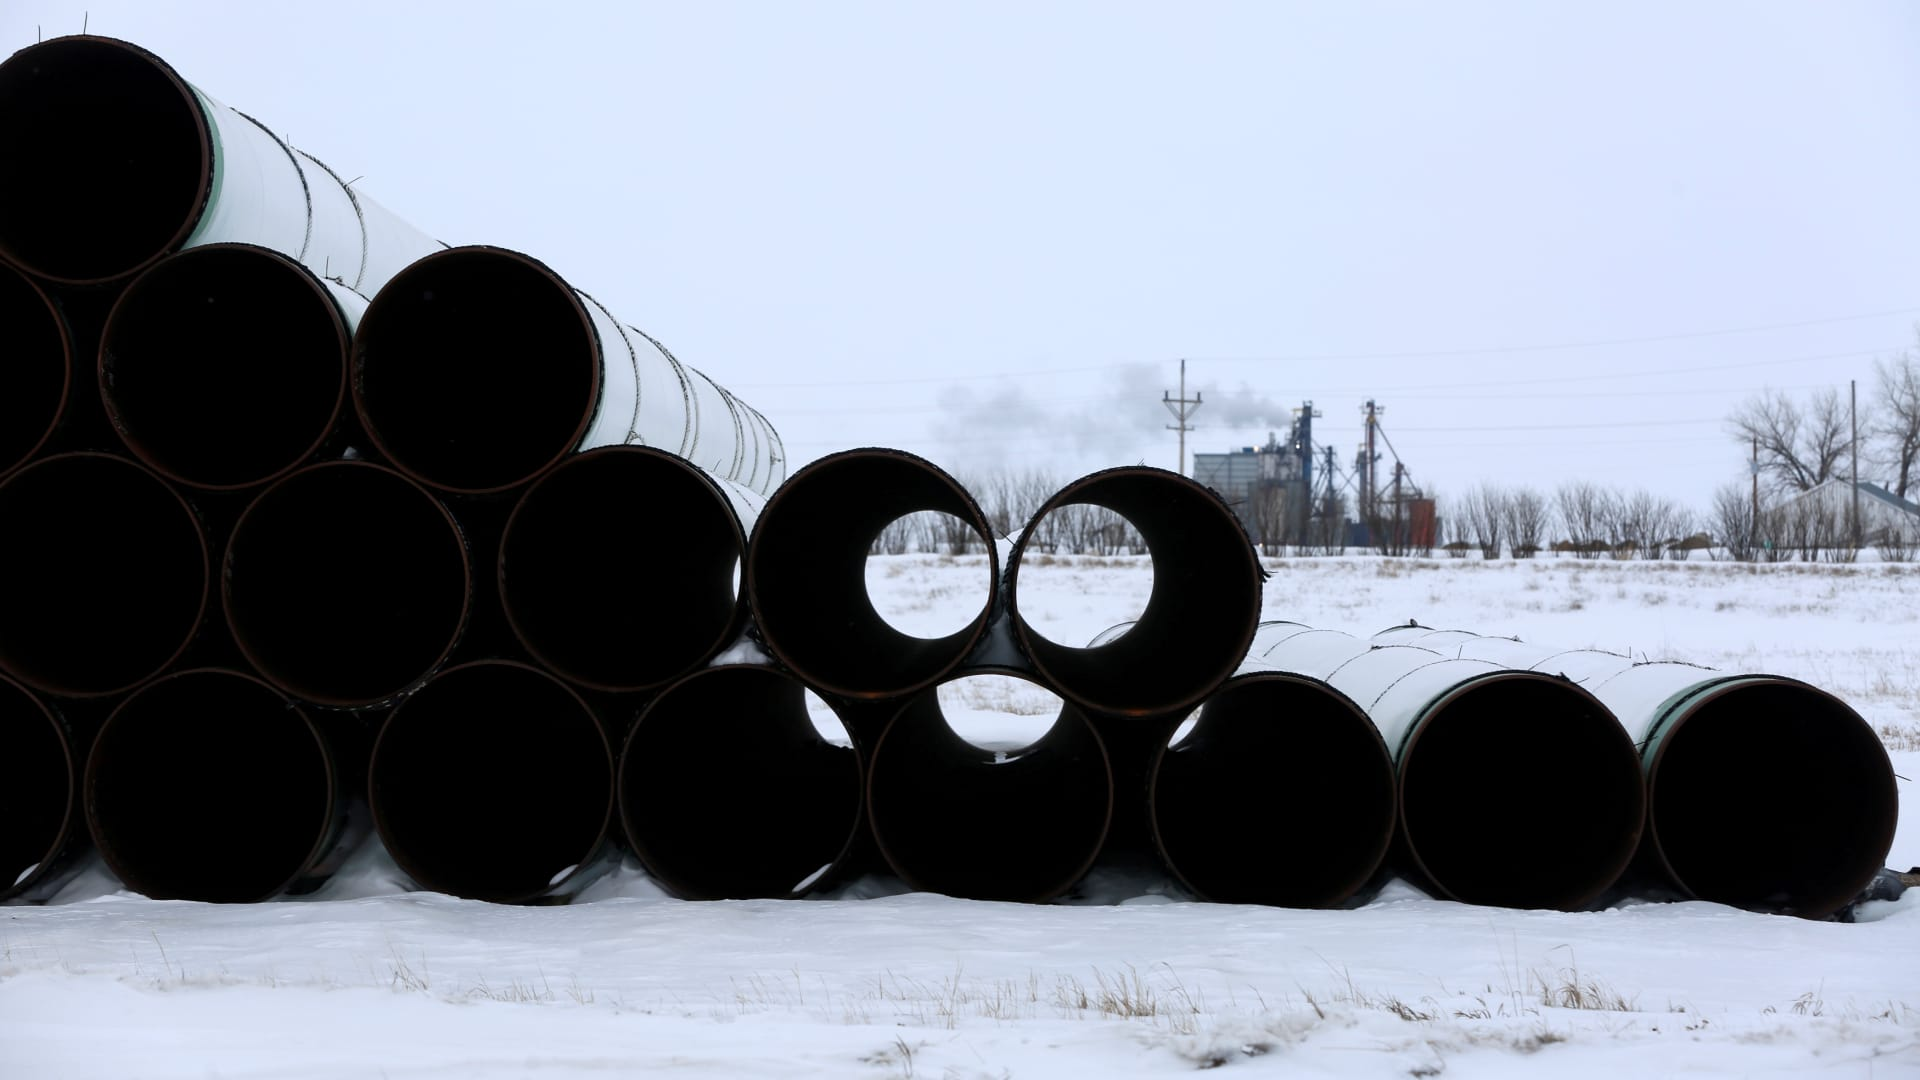 A depot used to store pipes for Transcanada Corp's planned Keystone XL oil pipeline is seen in Gascoyne, North Dakota, January 25, 2017.